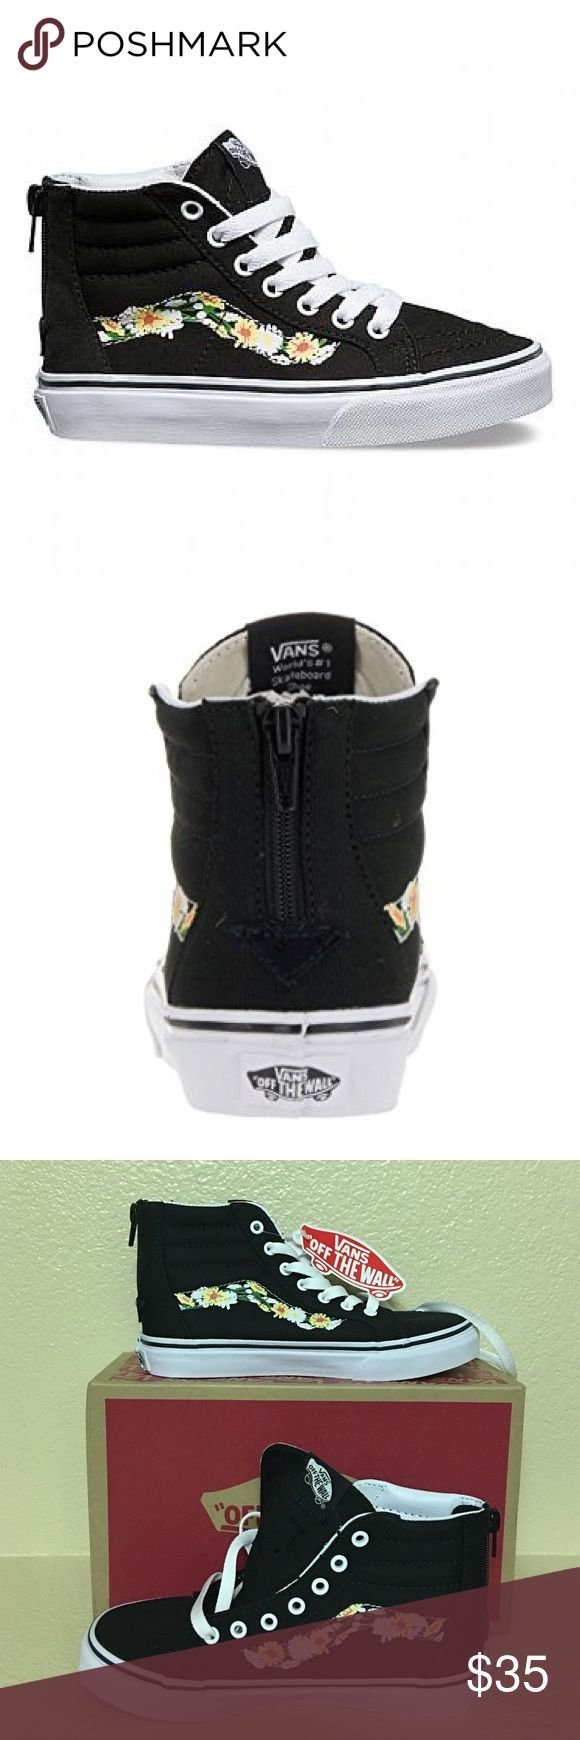 Girls Vans sk8 hi zip daisy New in box... Legendary Vans lace-up high top with a zipper entry at the heel, a daisy sidestripe, sturdy canvas and suede uppers, padded collars for support and flexibility, and signature rubber waffle outsoles. Vans Shoes Sneakers